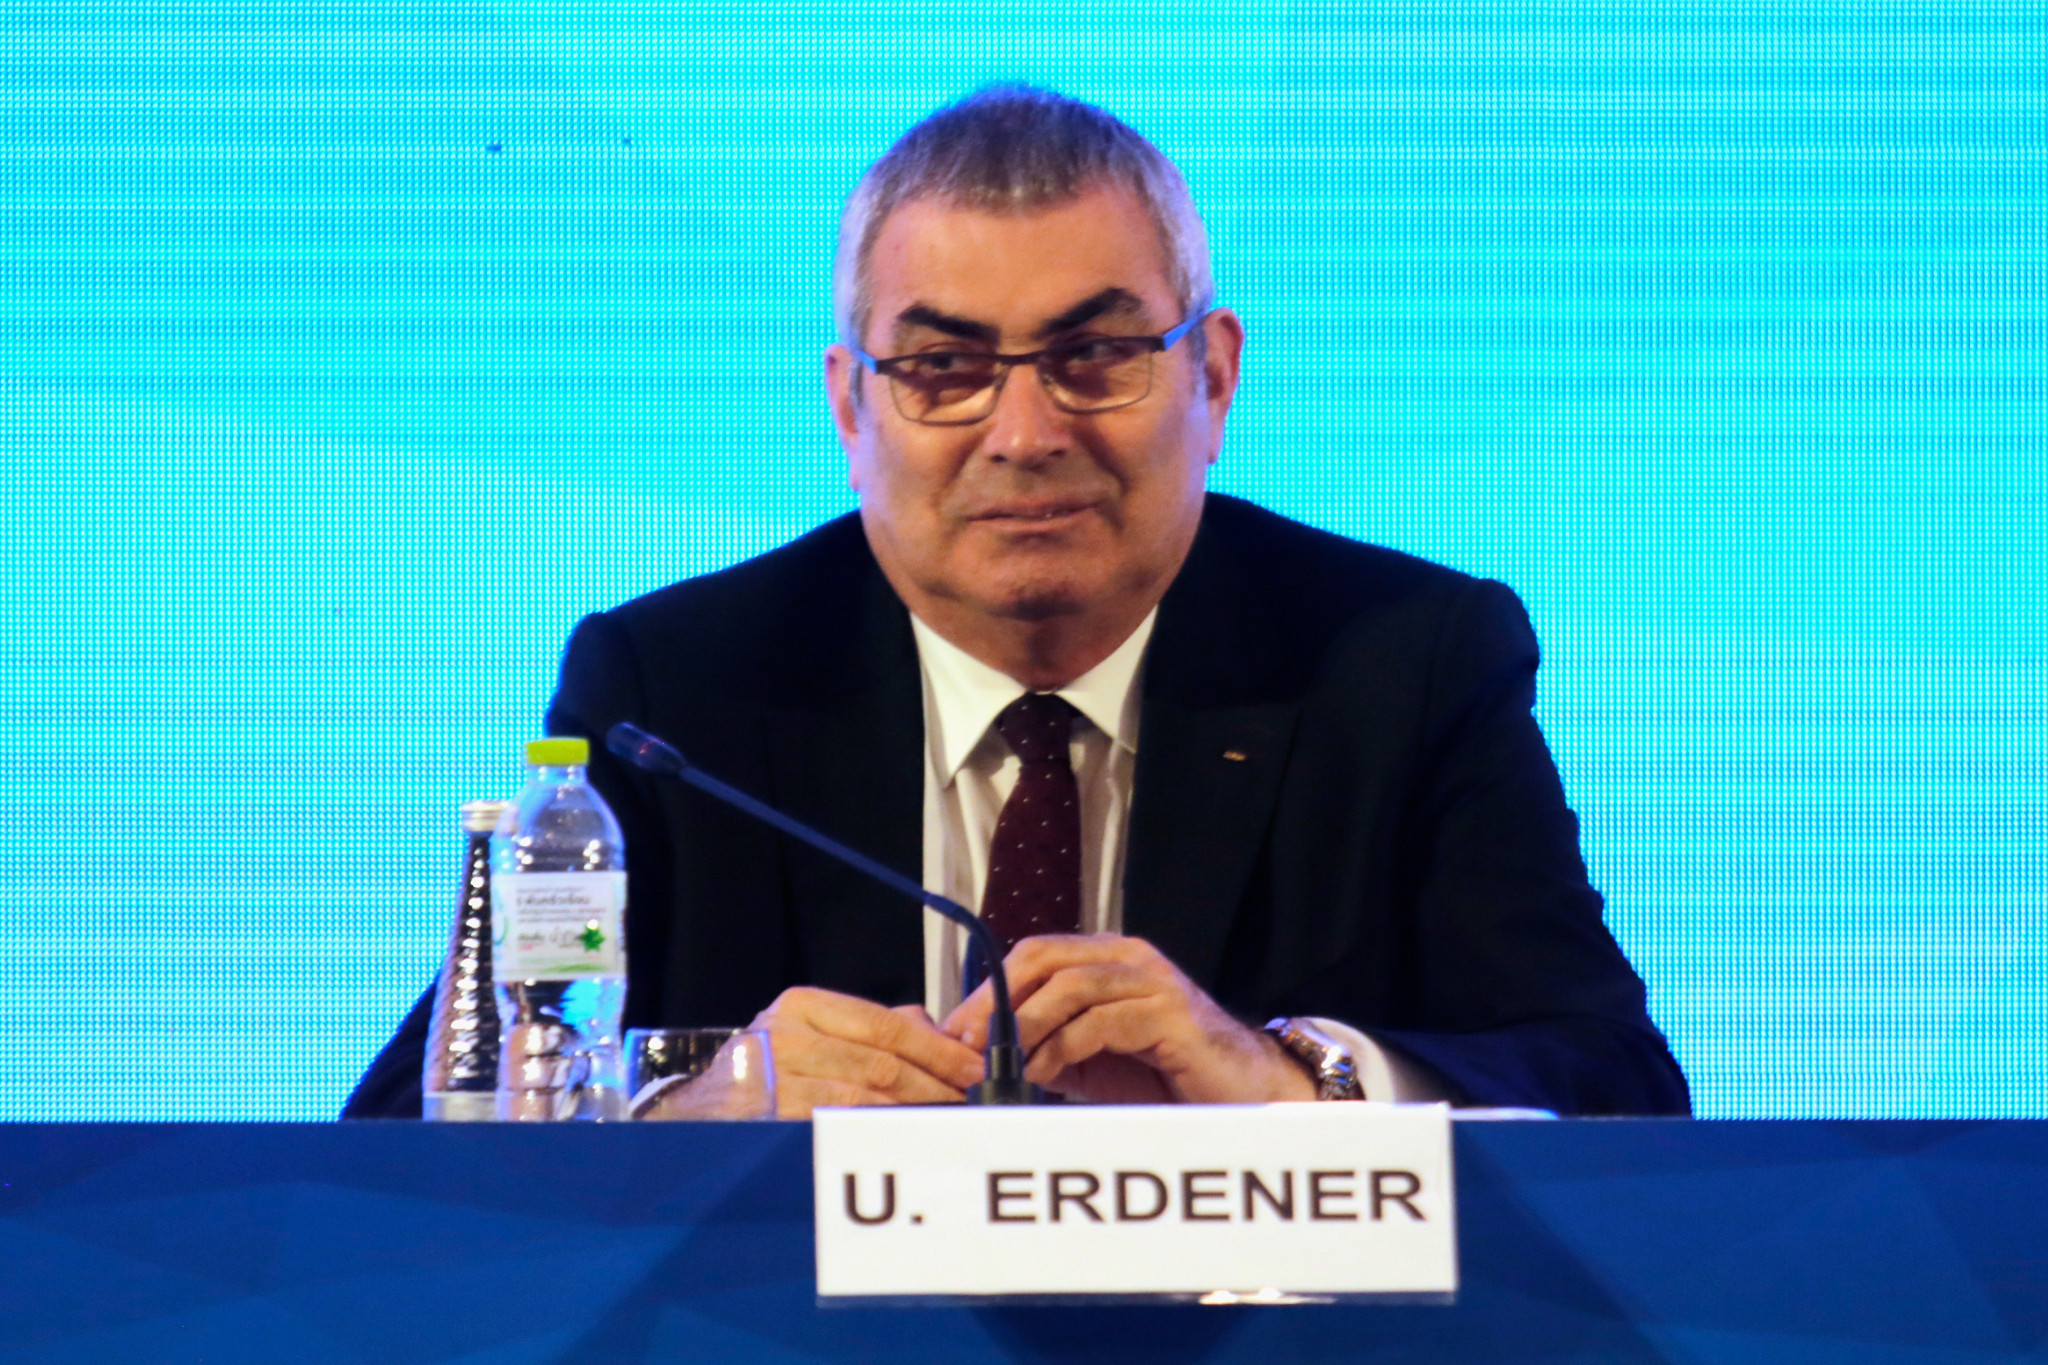 Uğur Erdener will serve a third term on the ASOIF Council ©Getty Images